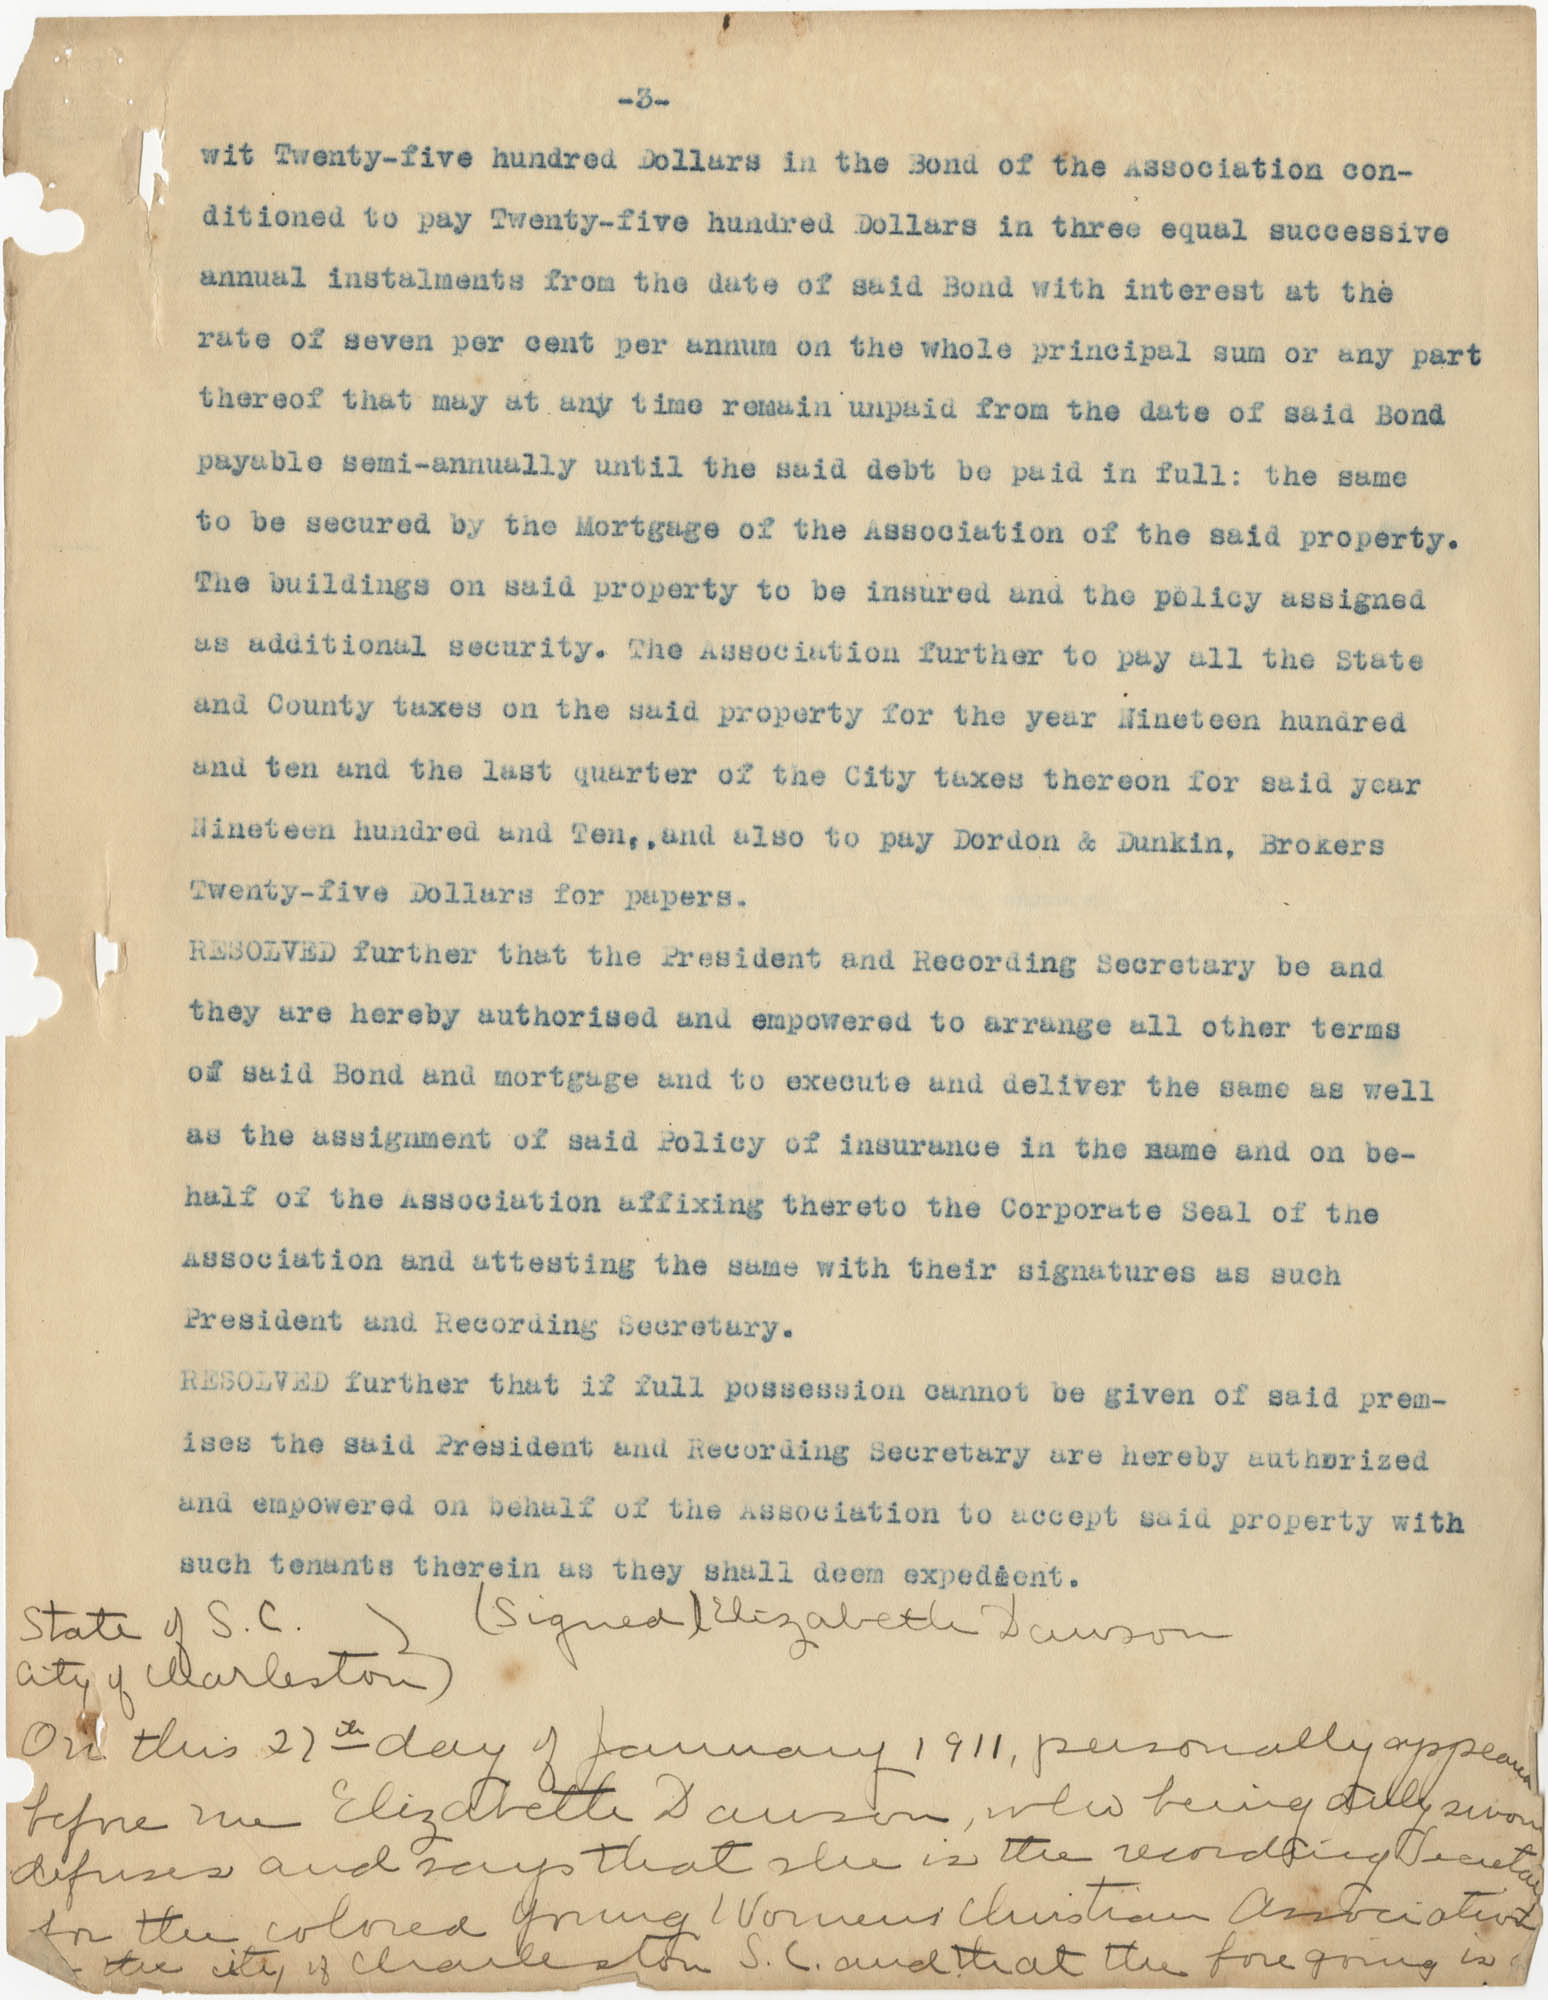 Minutes to the Coming Street Y.W.C.A. Meeting, January 23, 1911, Page 3